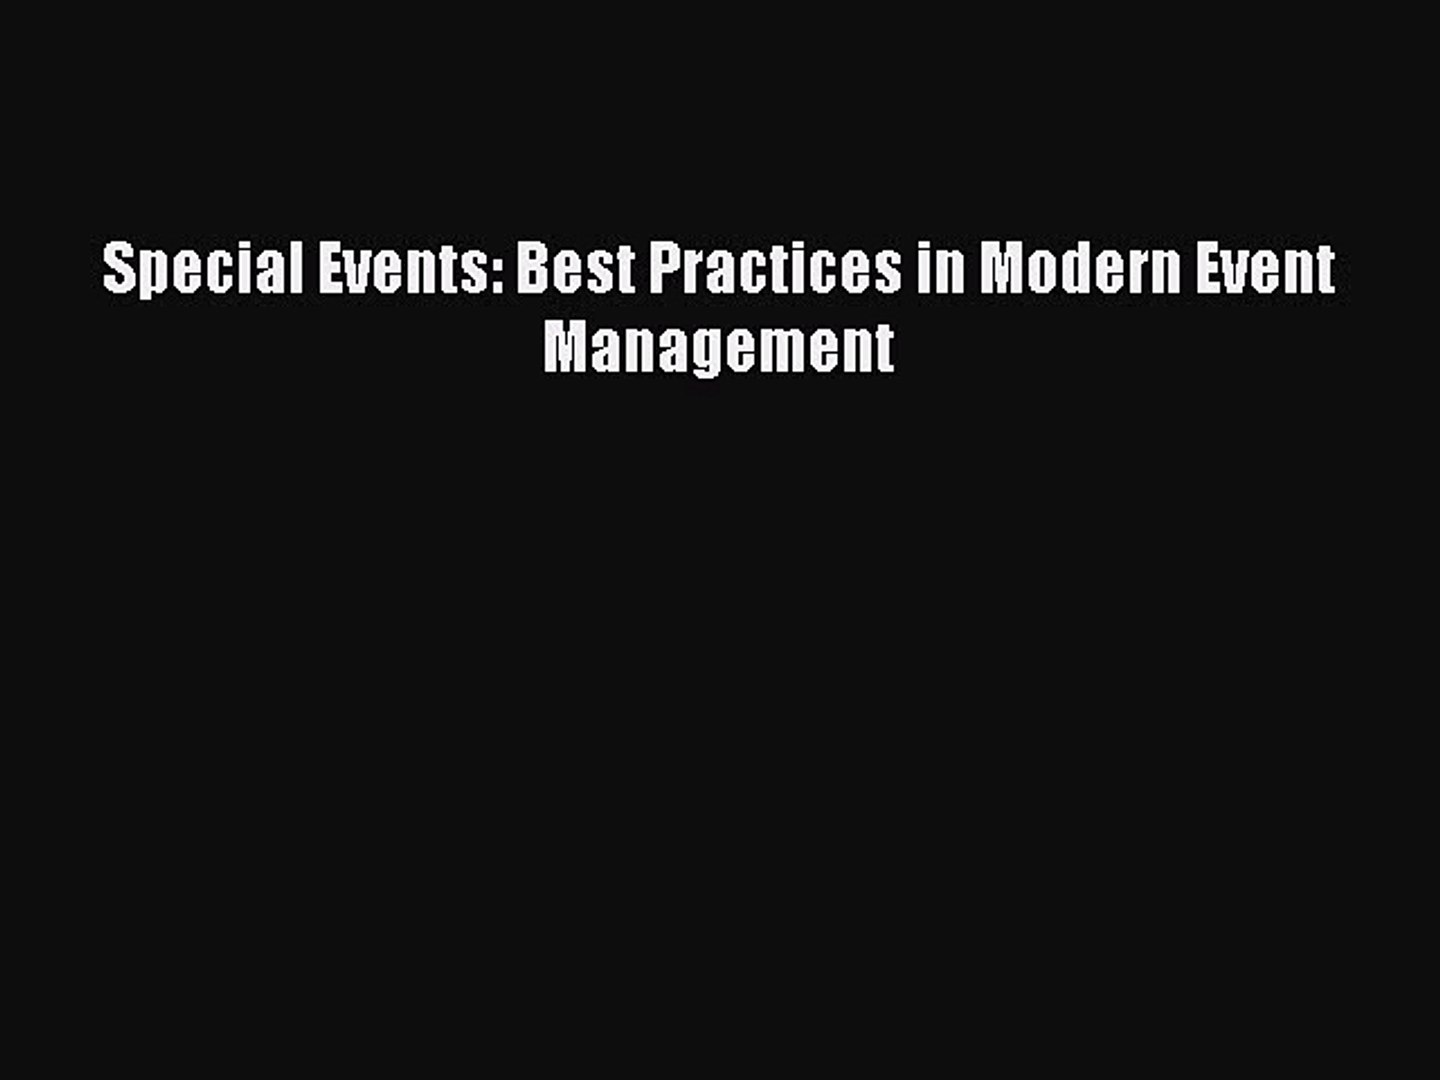 [Read PDF] Special Events: Best Practices in Modern Event Management Ebook Free